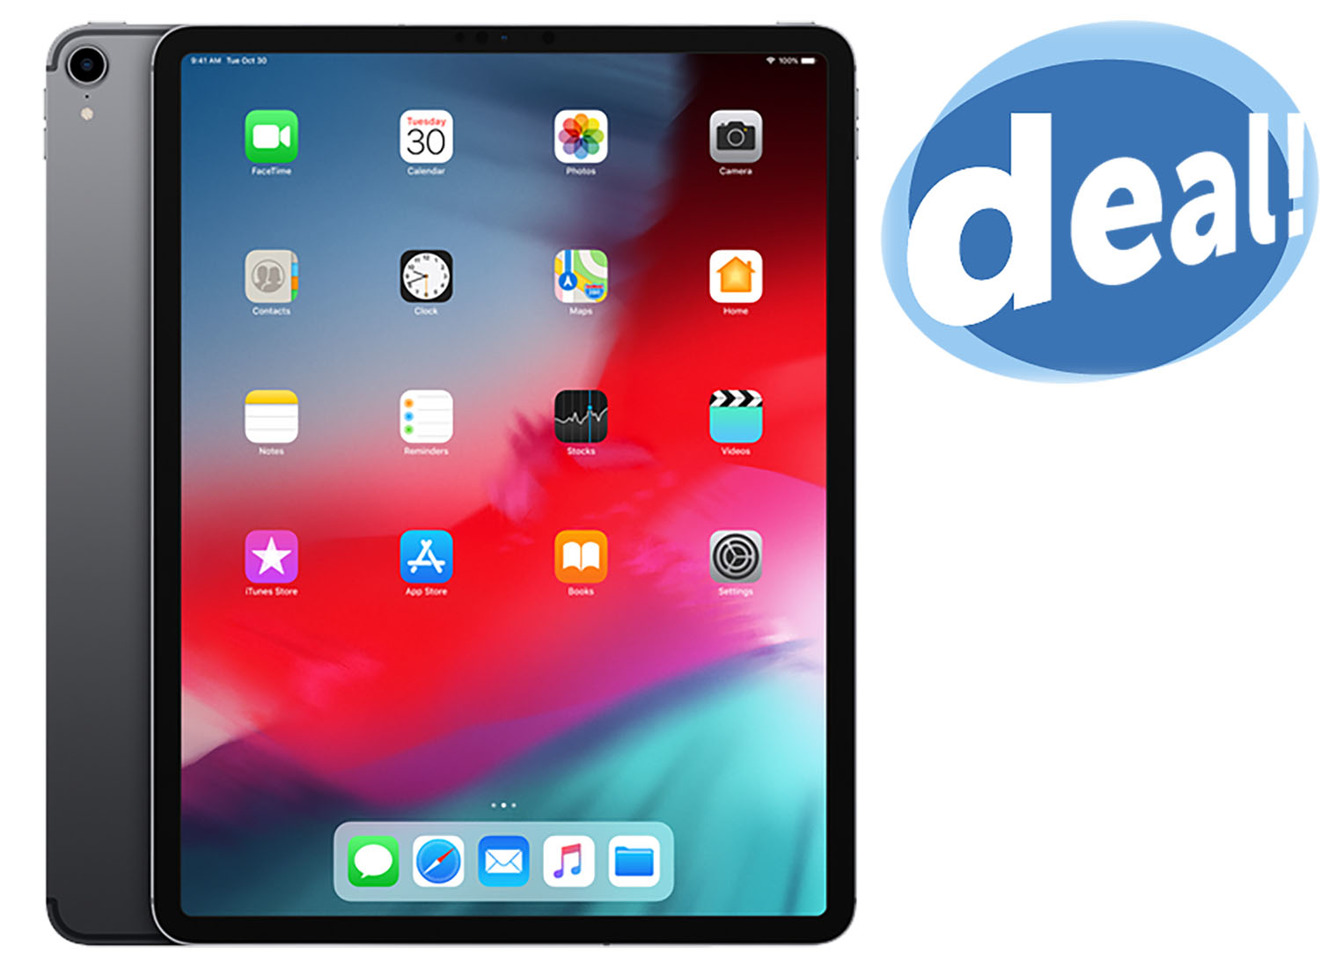 Ipad Pro 12 9 3rd Generation Price Guide Shop Closeout Deals